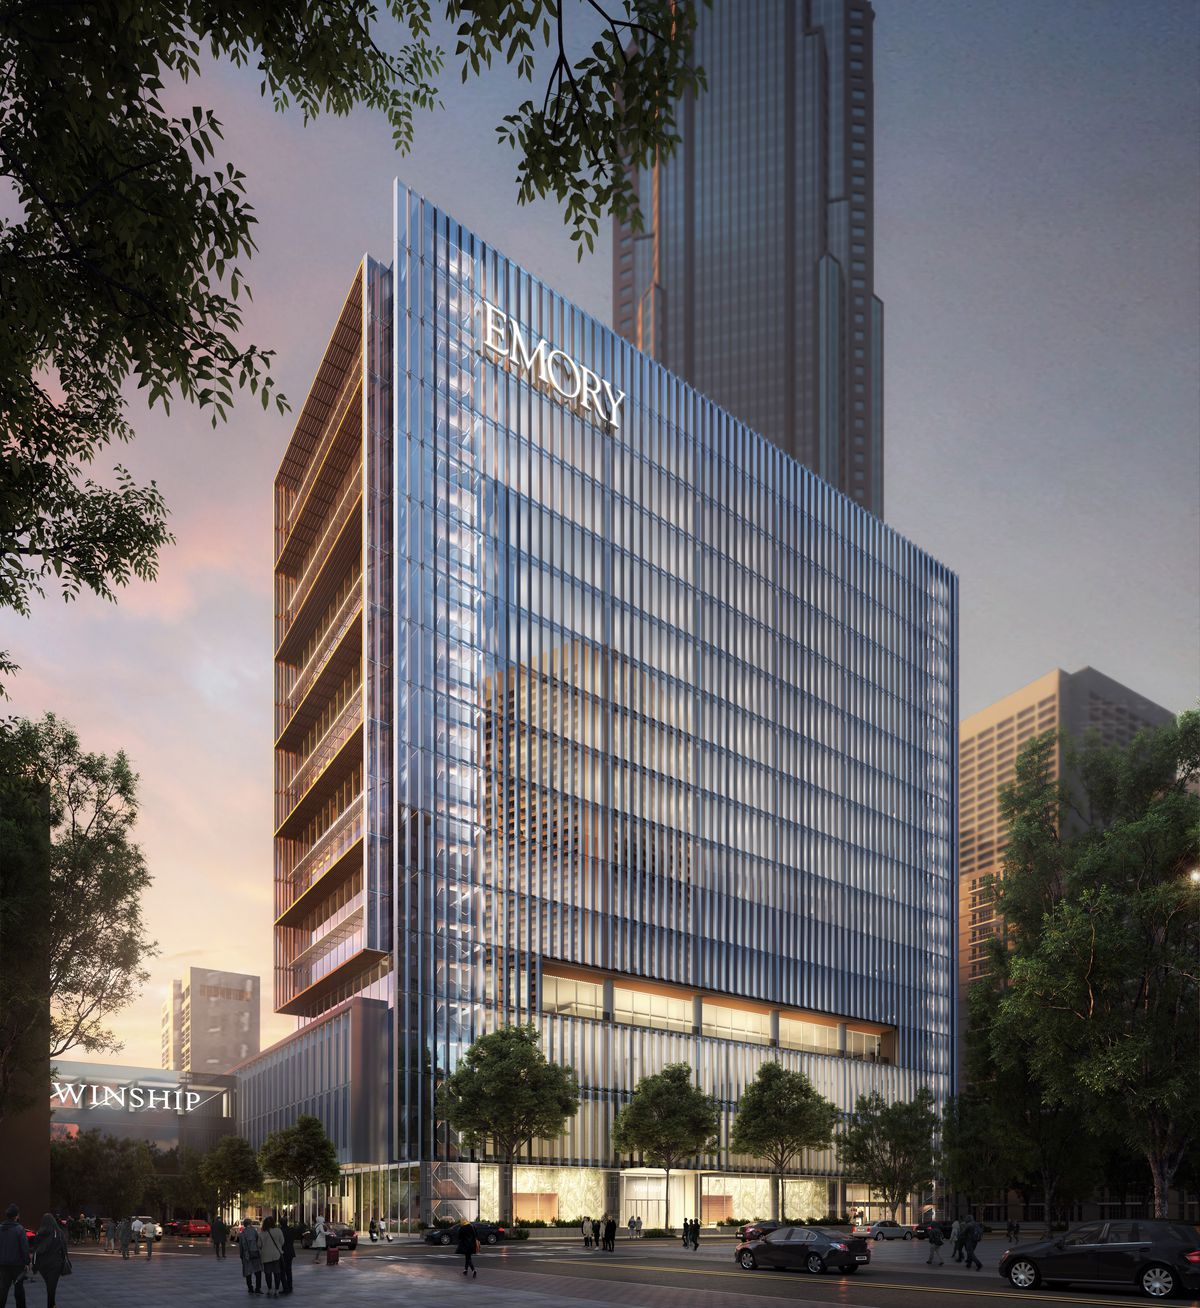 Rendering of tall building with EMORY written at the top left corner.